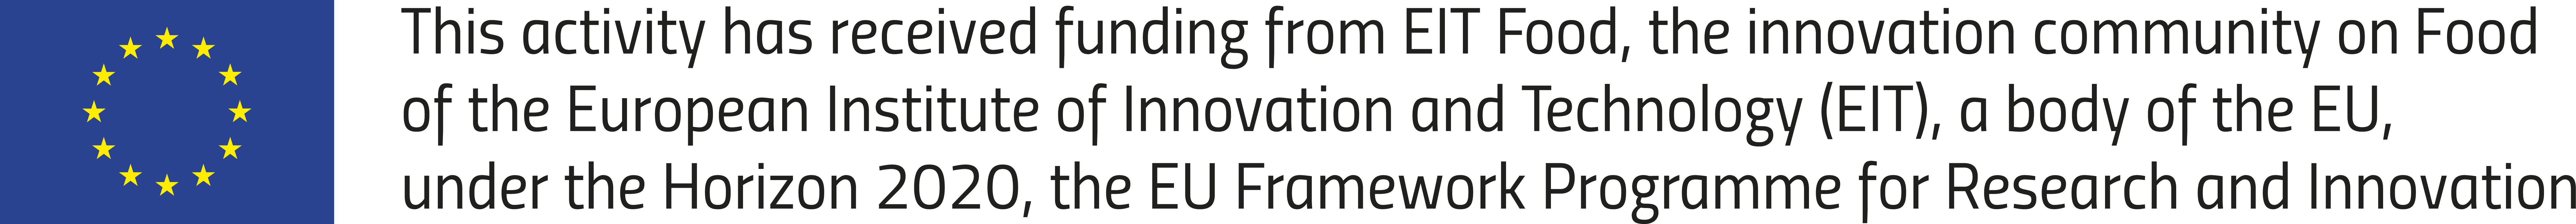 EIT Food is supported by EIT, a body of the European Union.